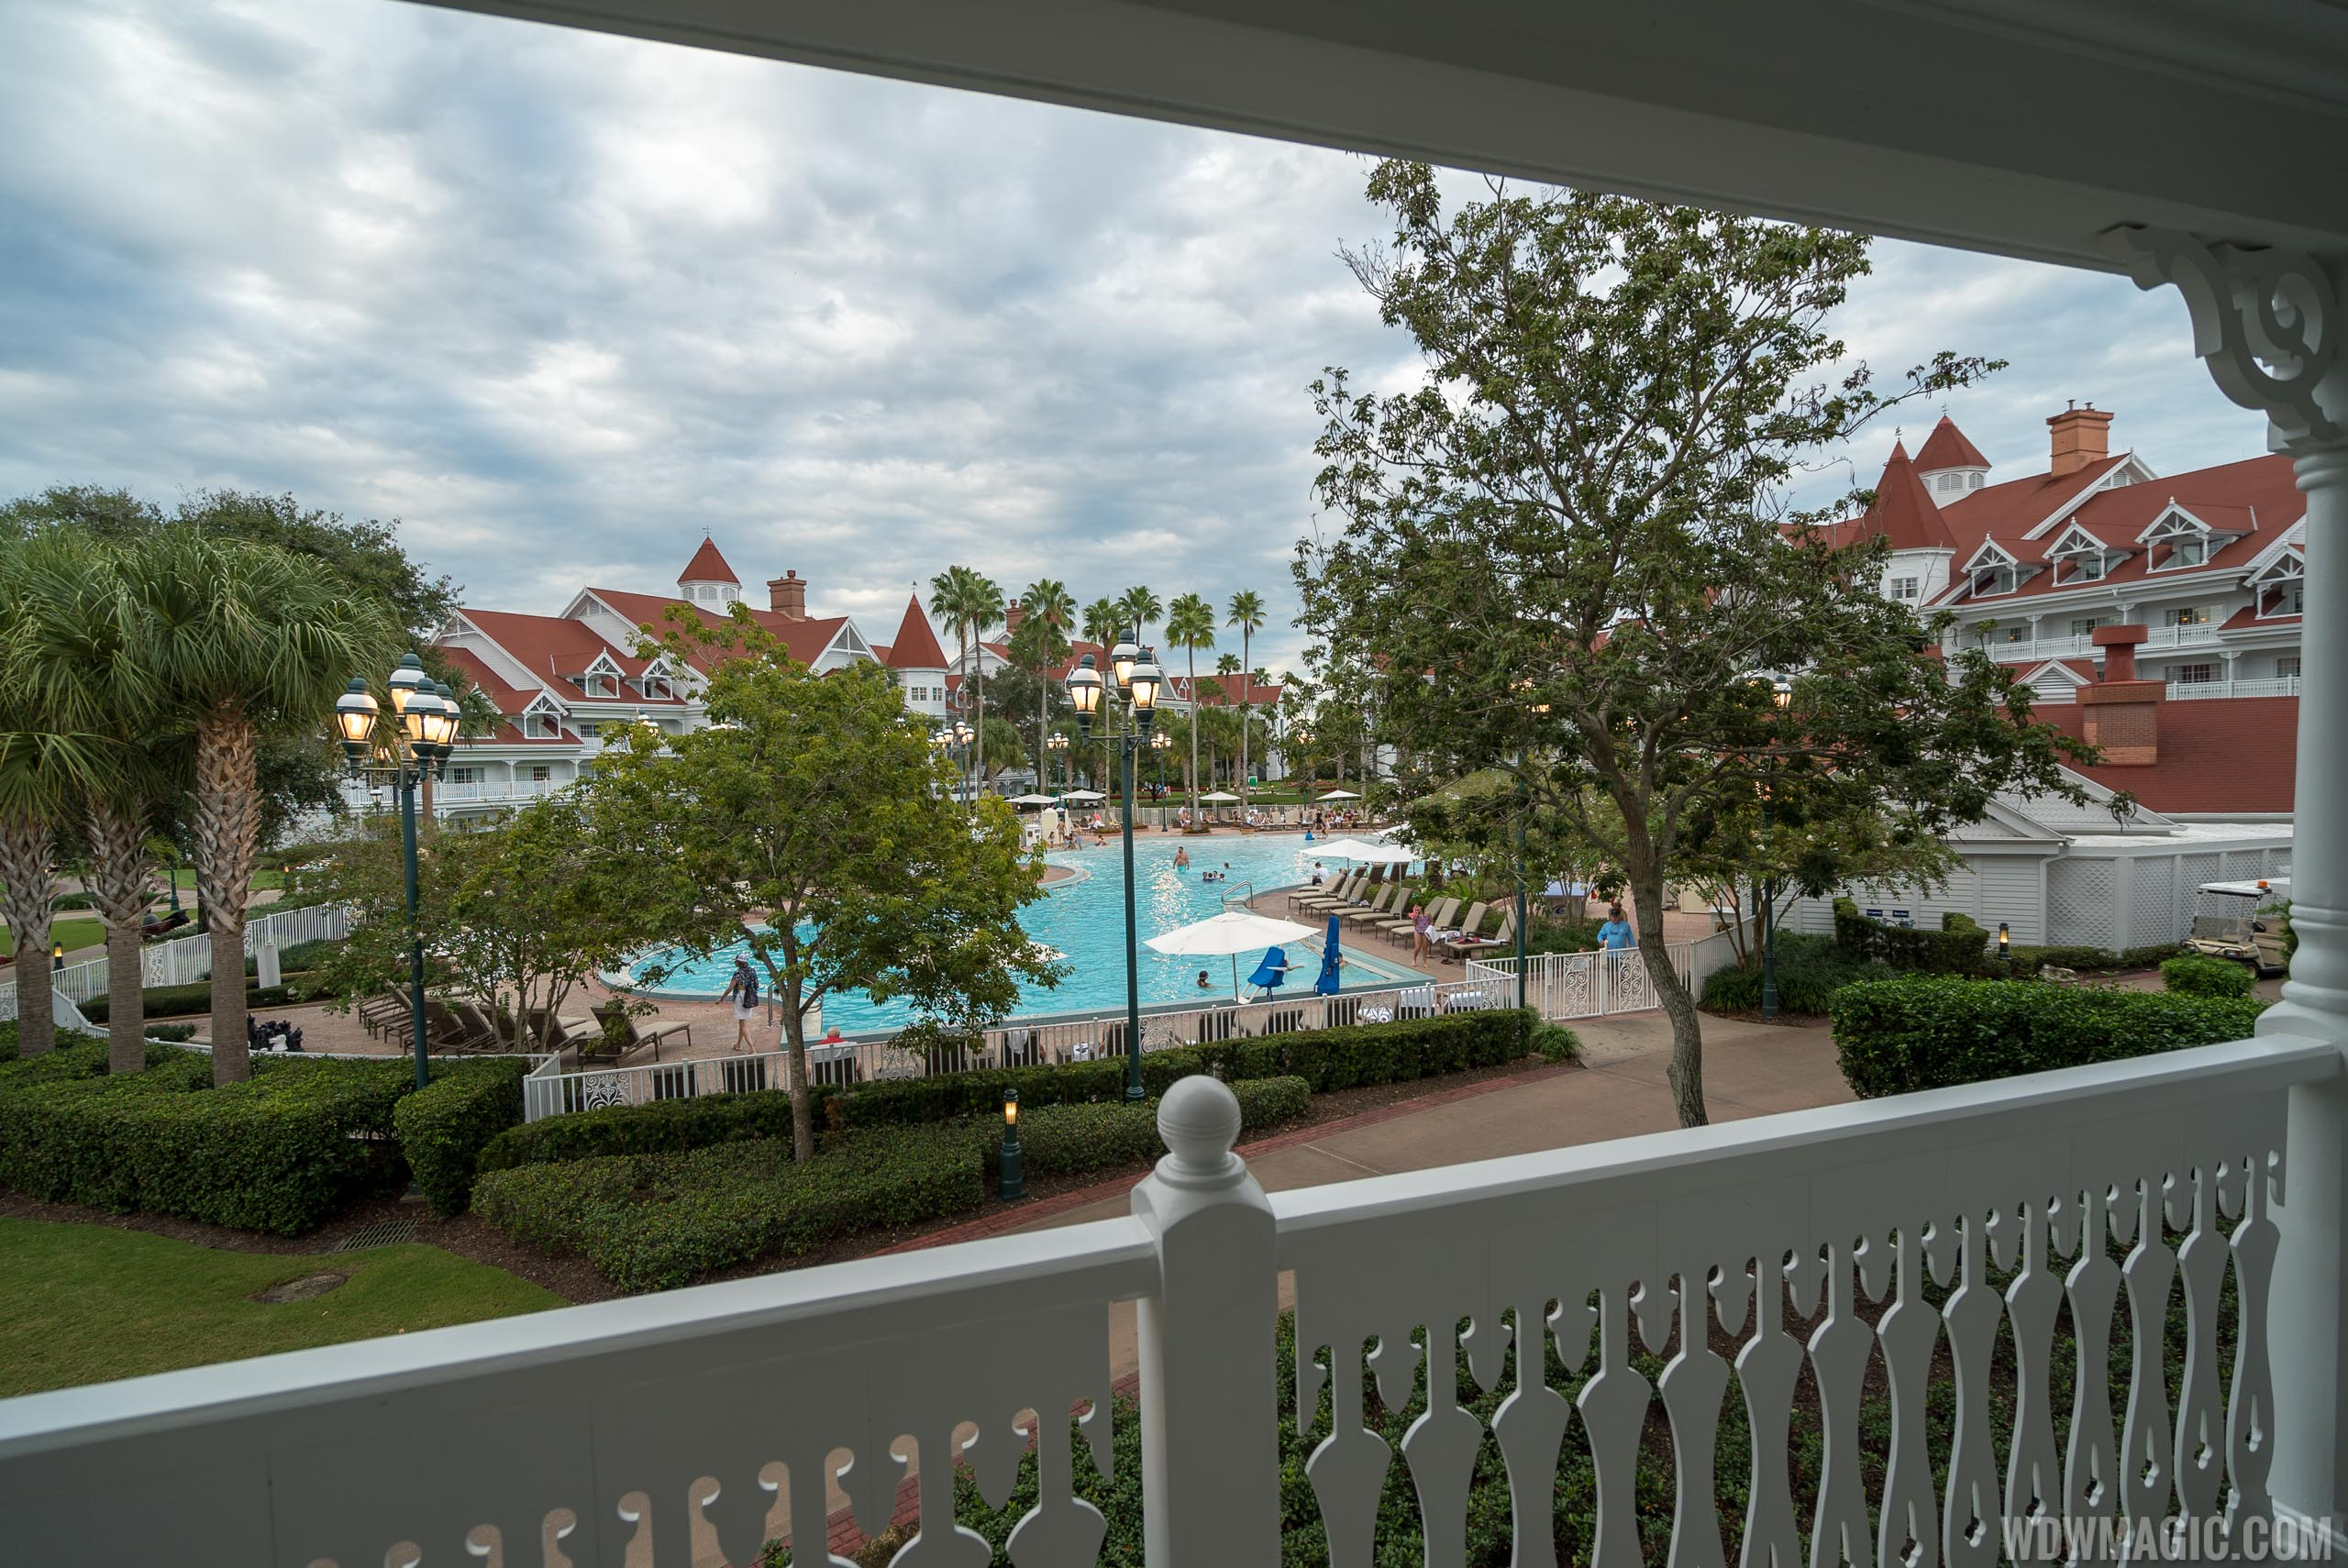 Grand Floridian Resort Guest Room Garden View In Big Pine Key Building Photo 17 Of 17